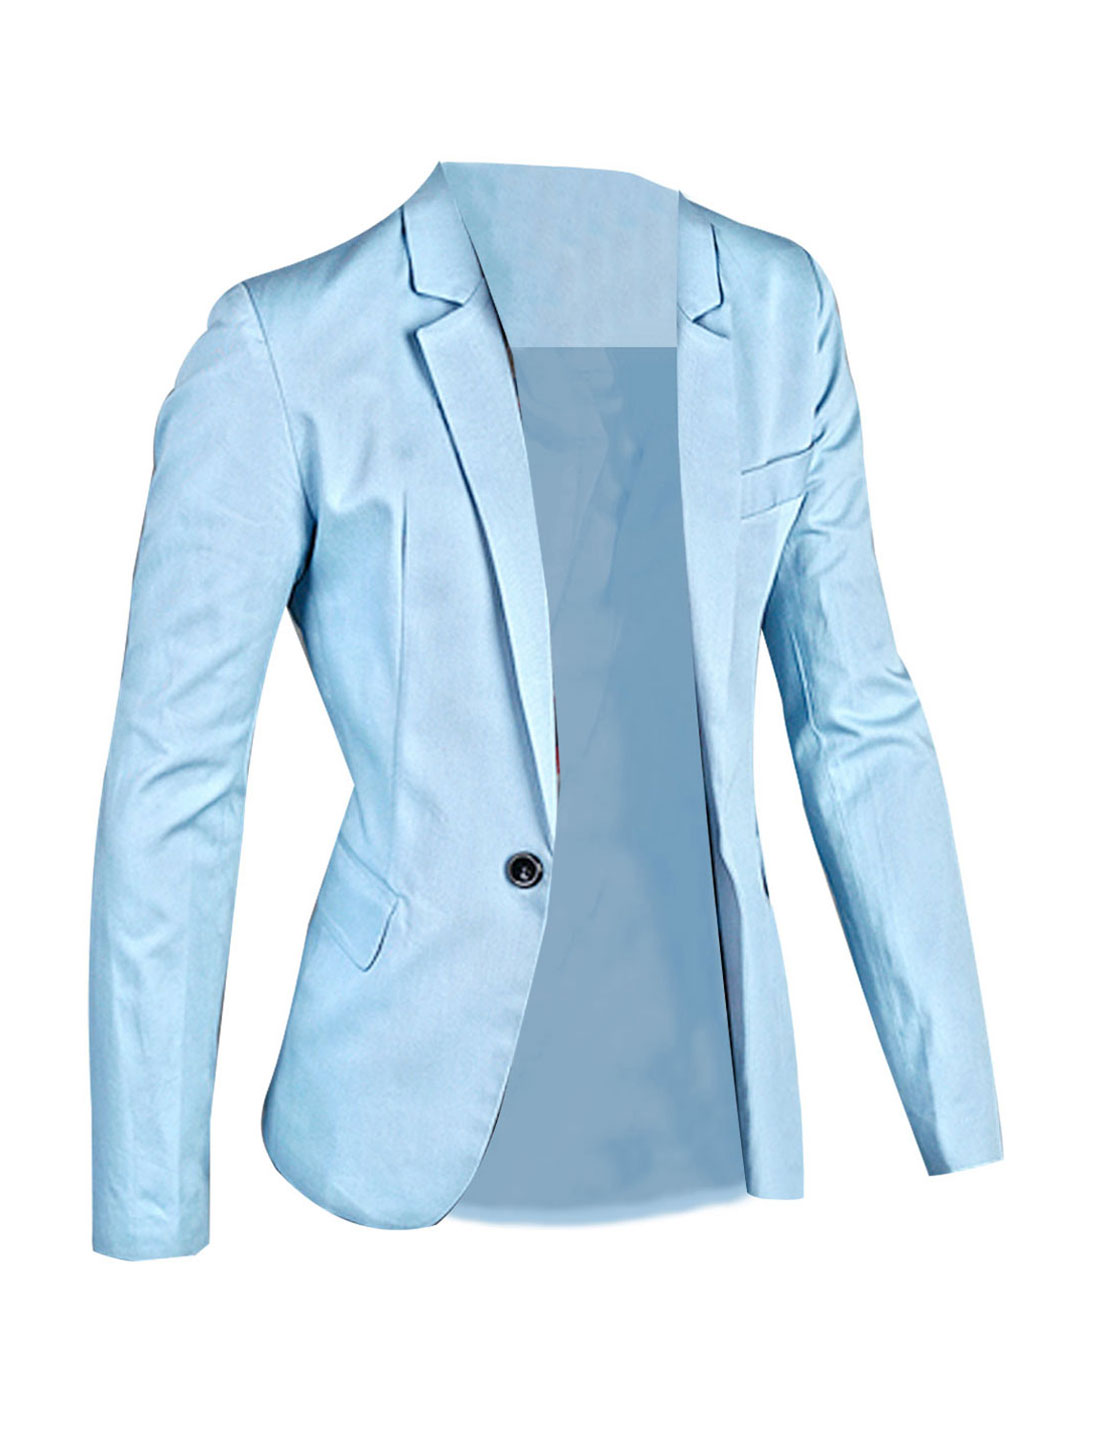 Mens Light Blue Side Flap Pcokets Notched Lapel Autumn Blazer M